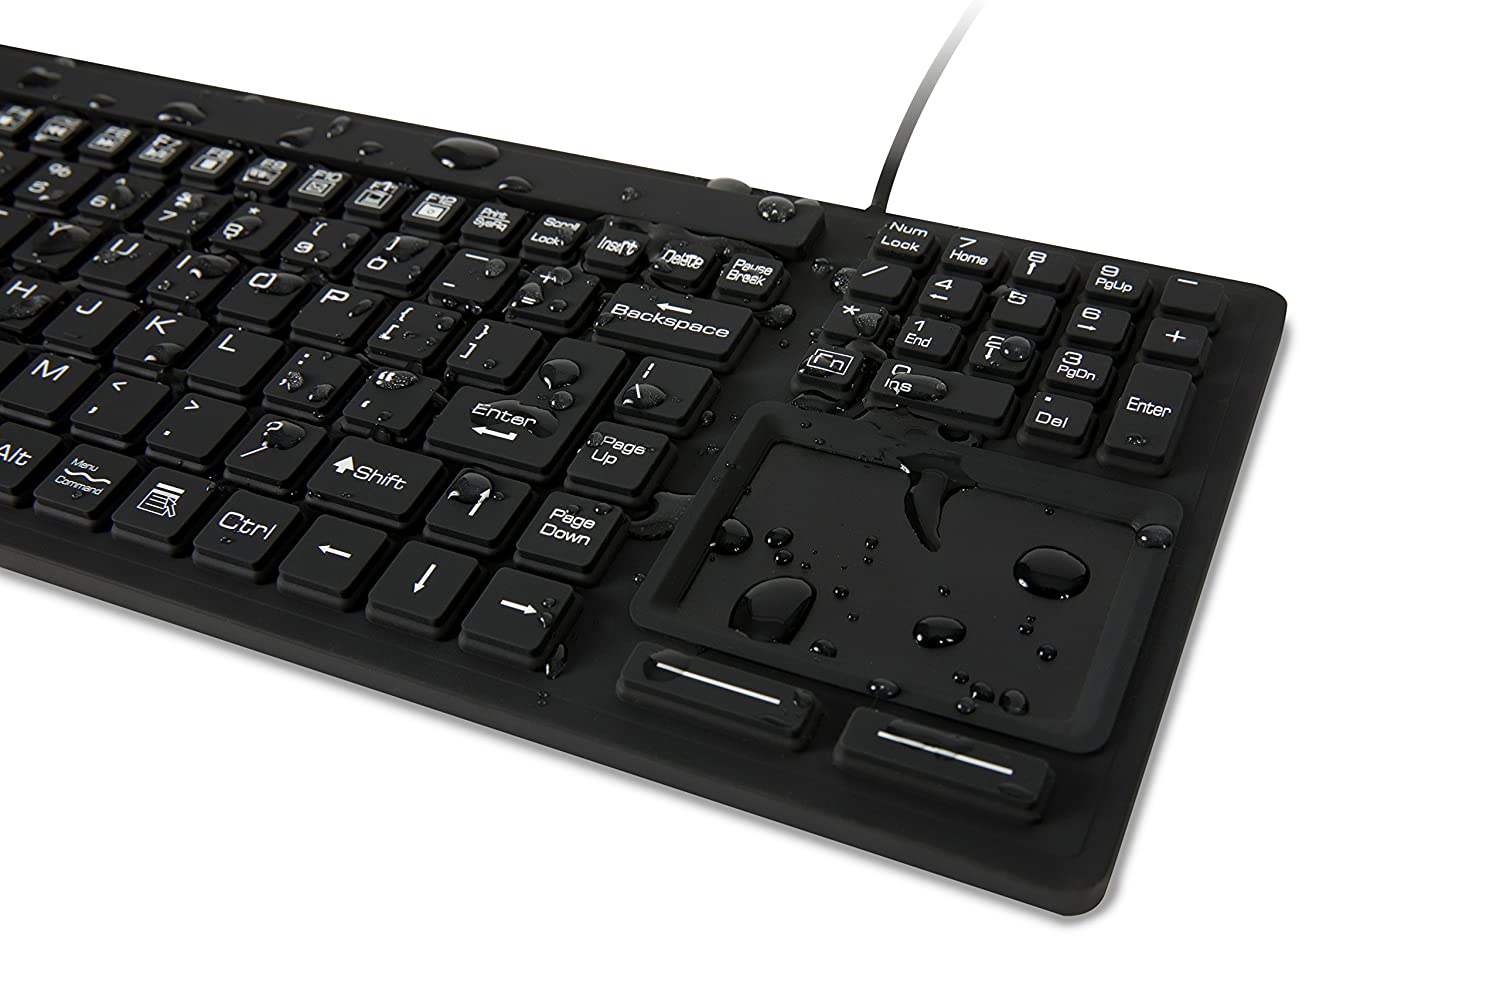 WetKeys Waterproof Touchpad Plus Professional-Grade Keyboard w/Touchpad (USB) (Black) | KBWKRC106T-BK